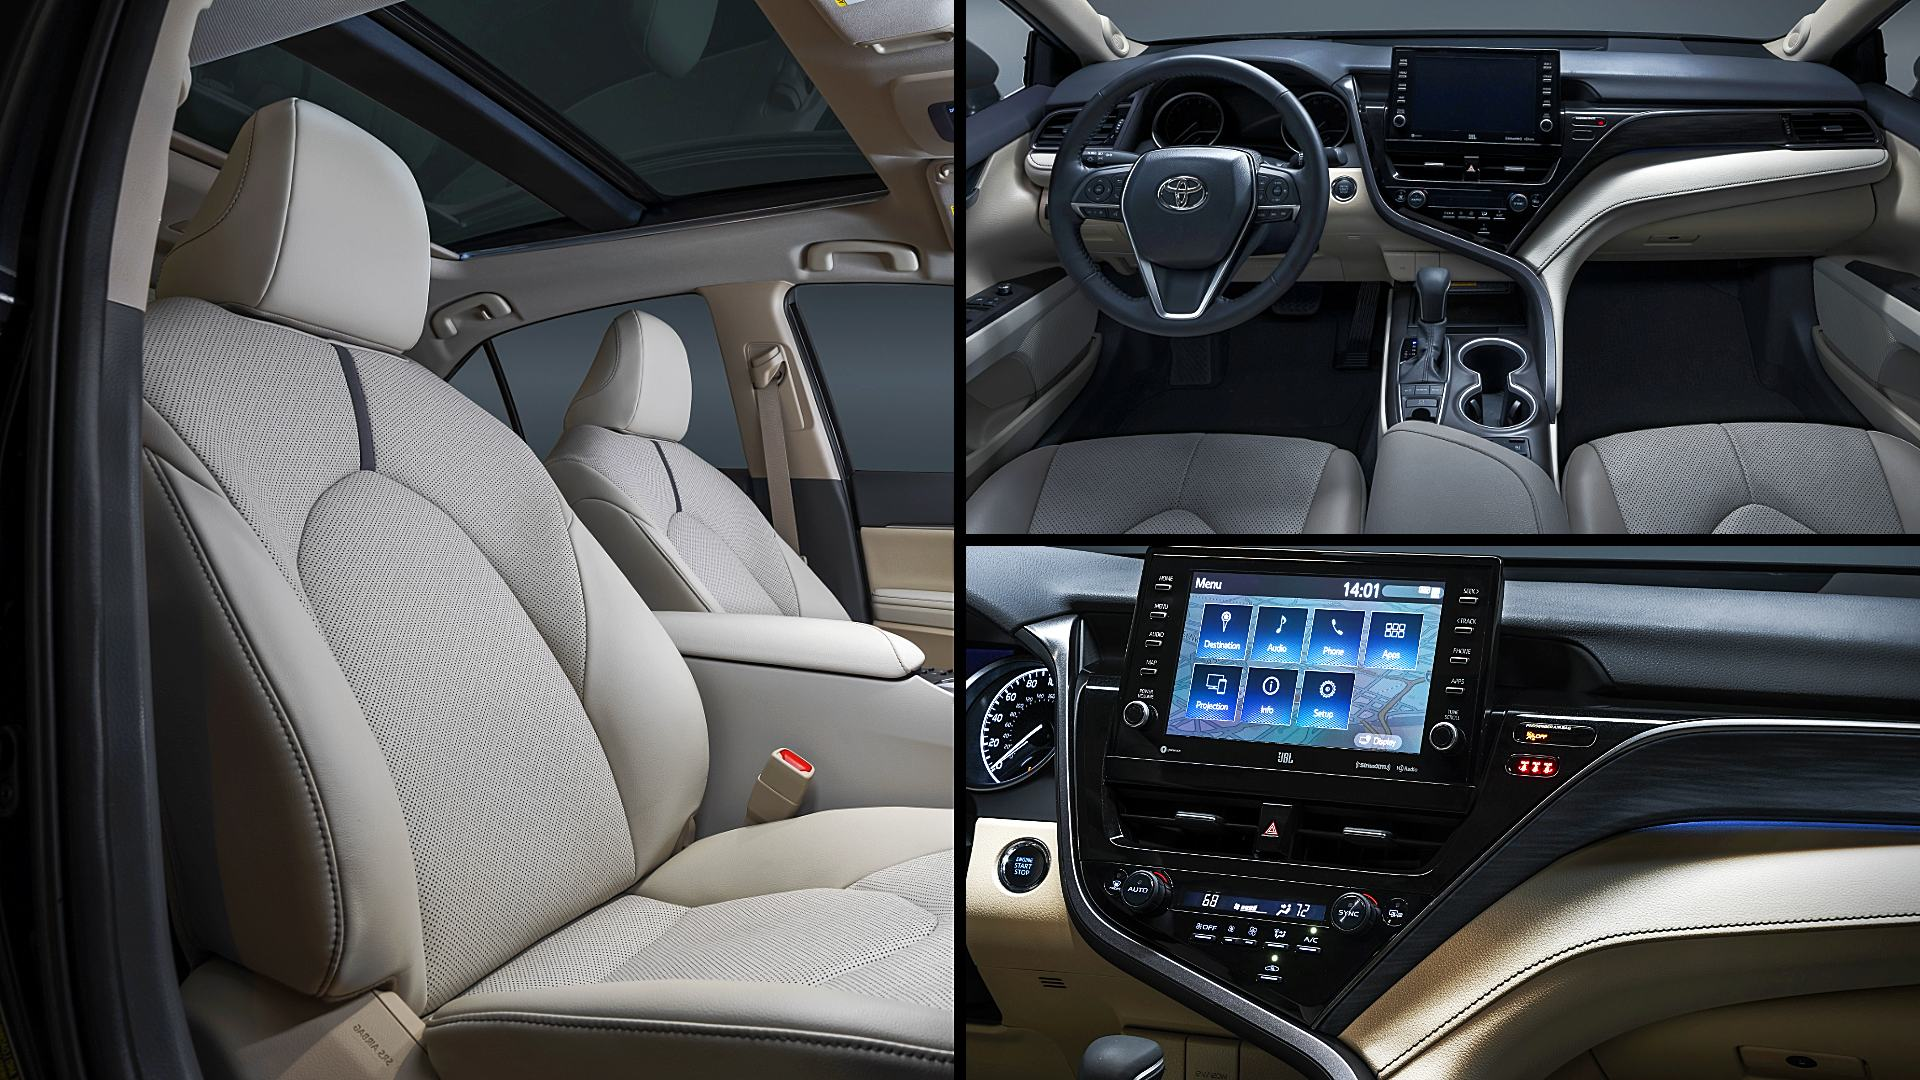 2021 Toyota Camry XLE Interior Images